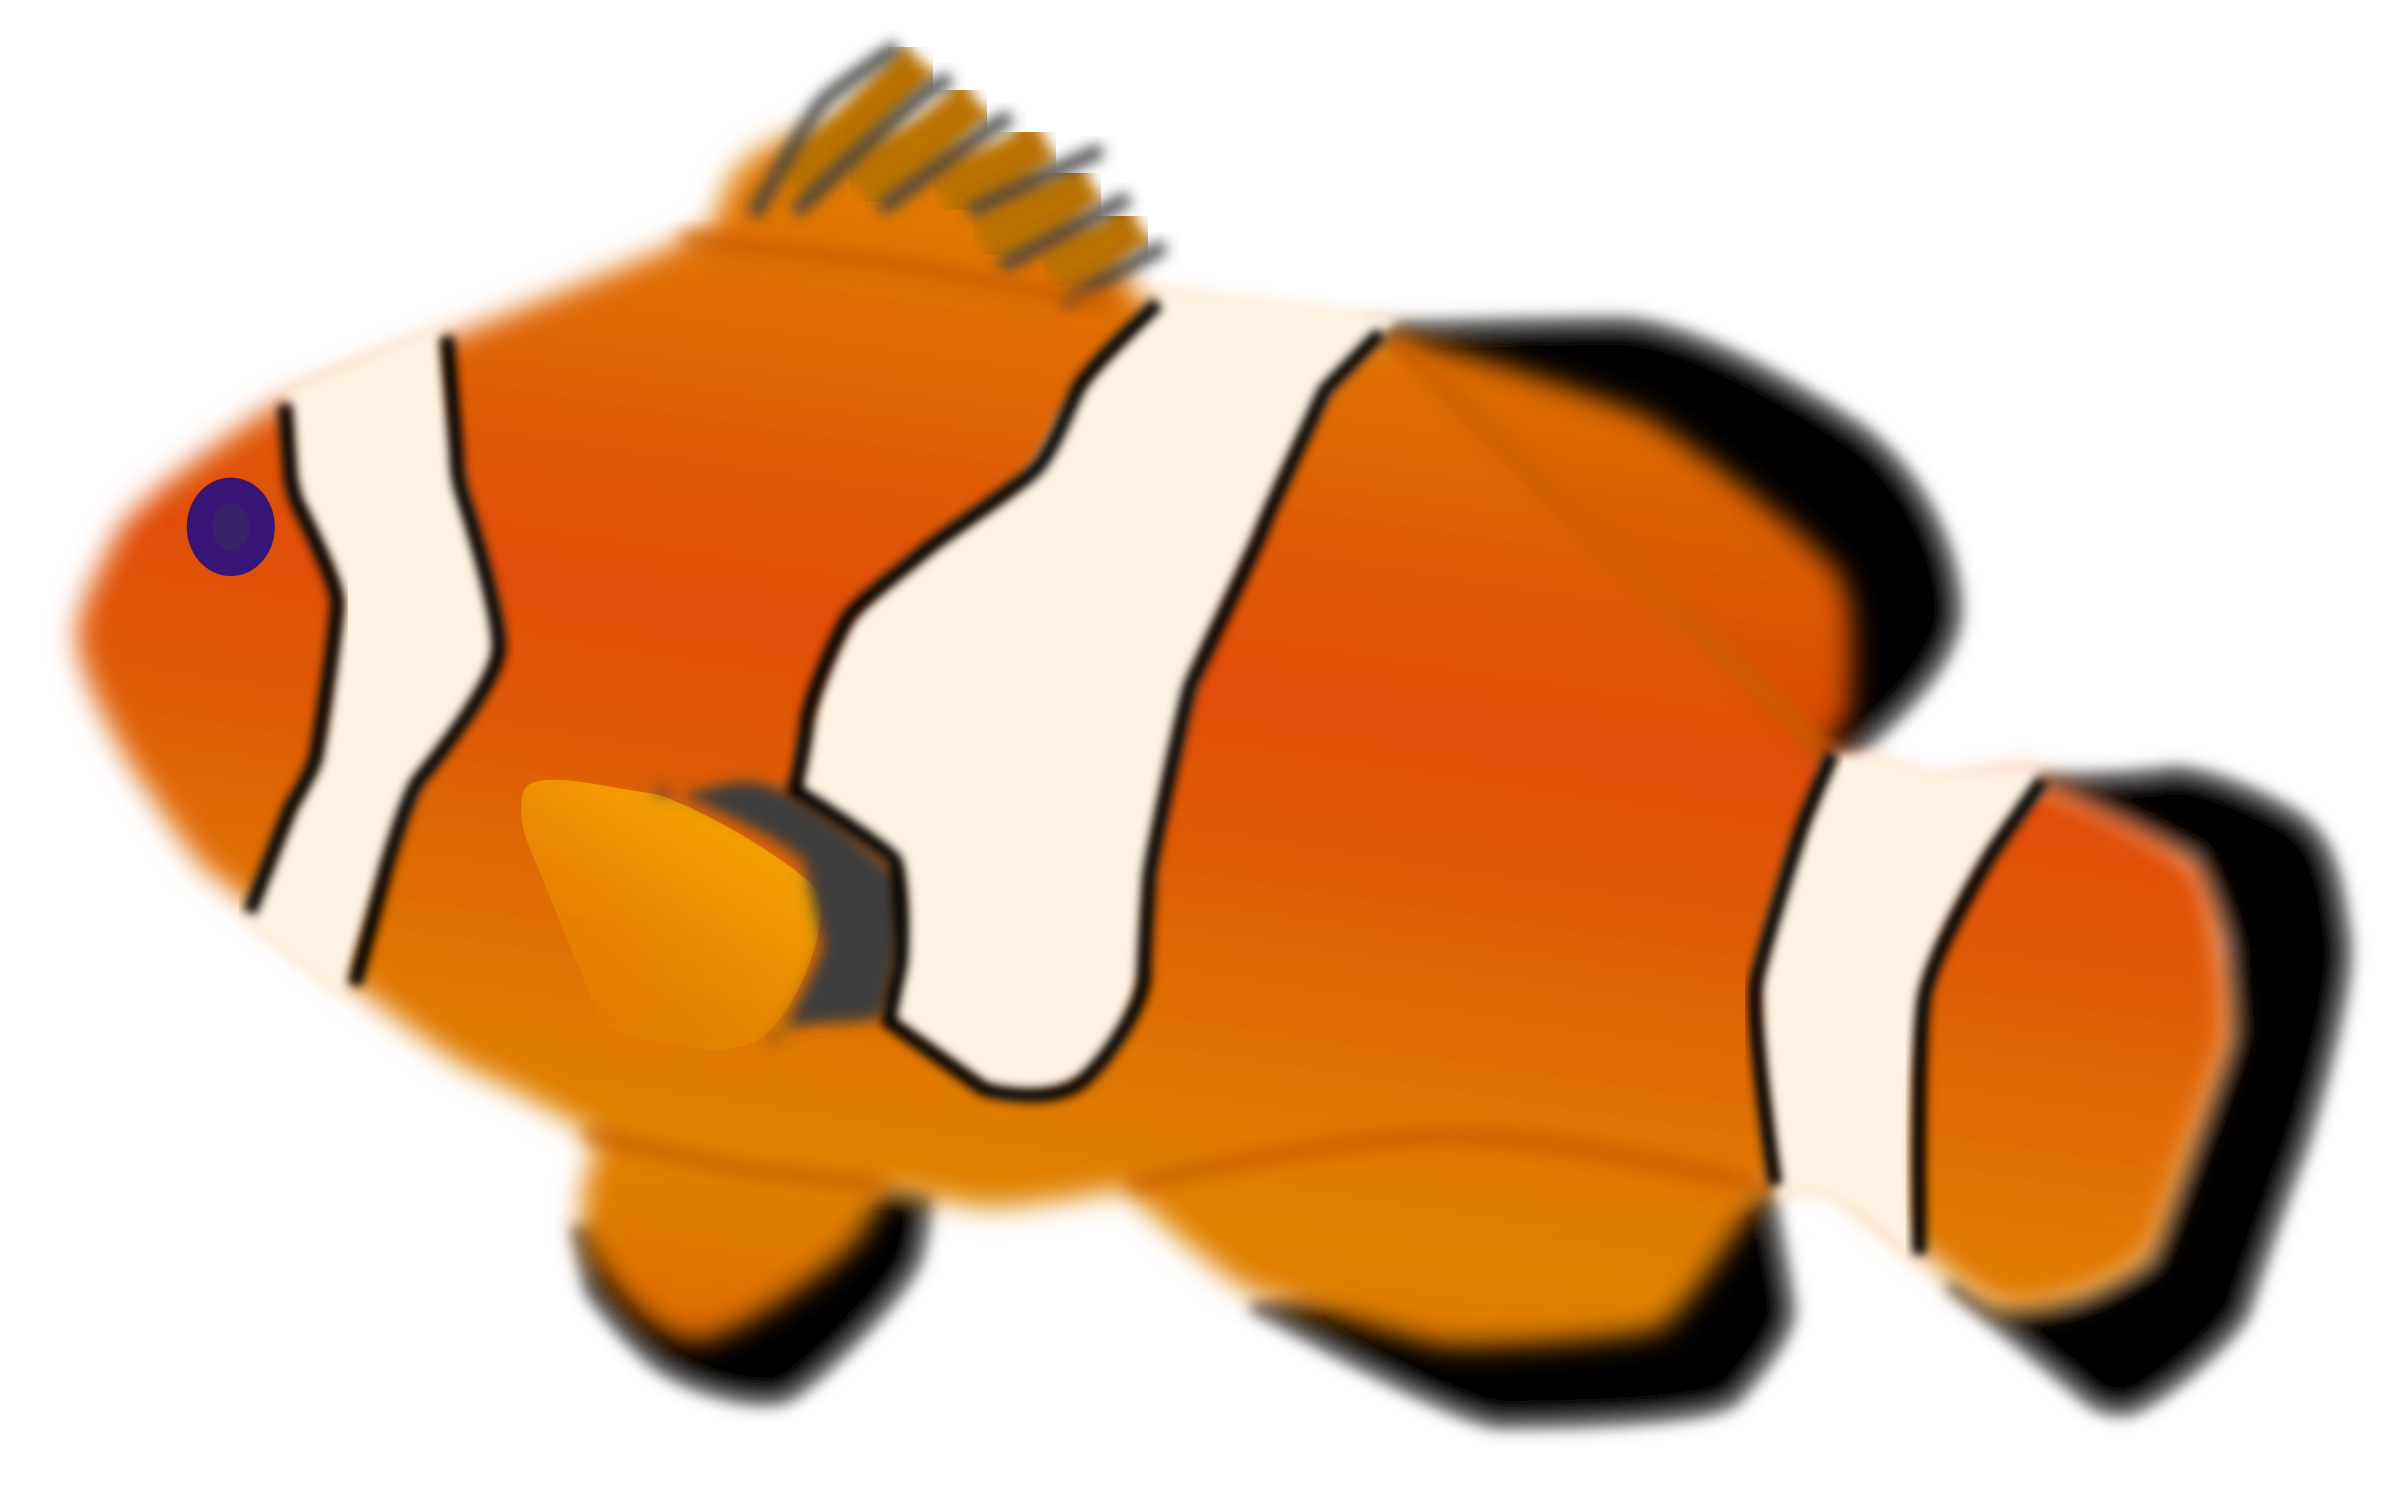 Aquarium fish - Amphiprion percula by mystica